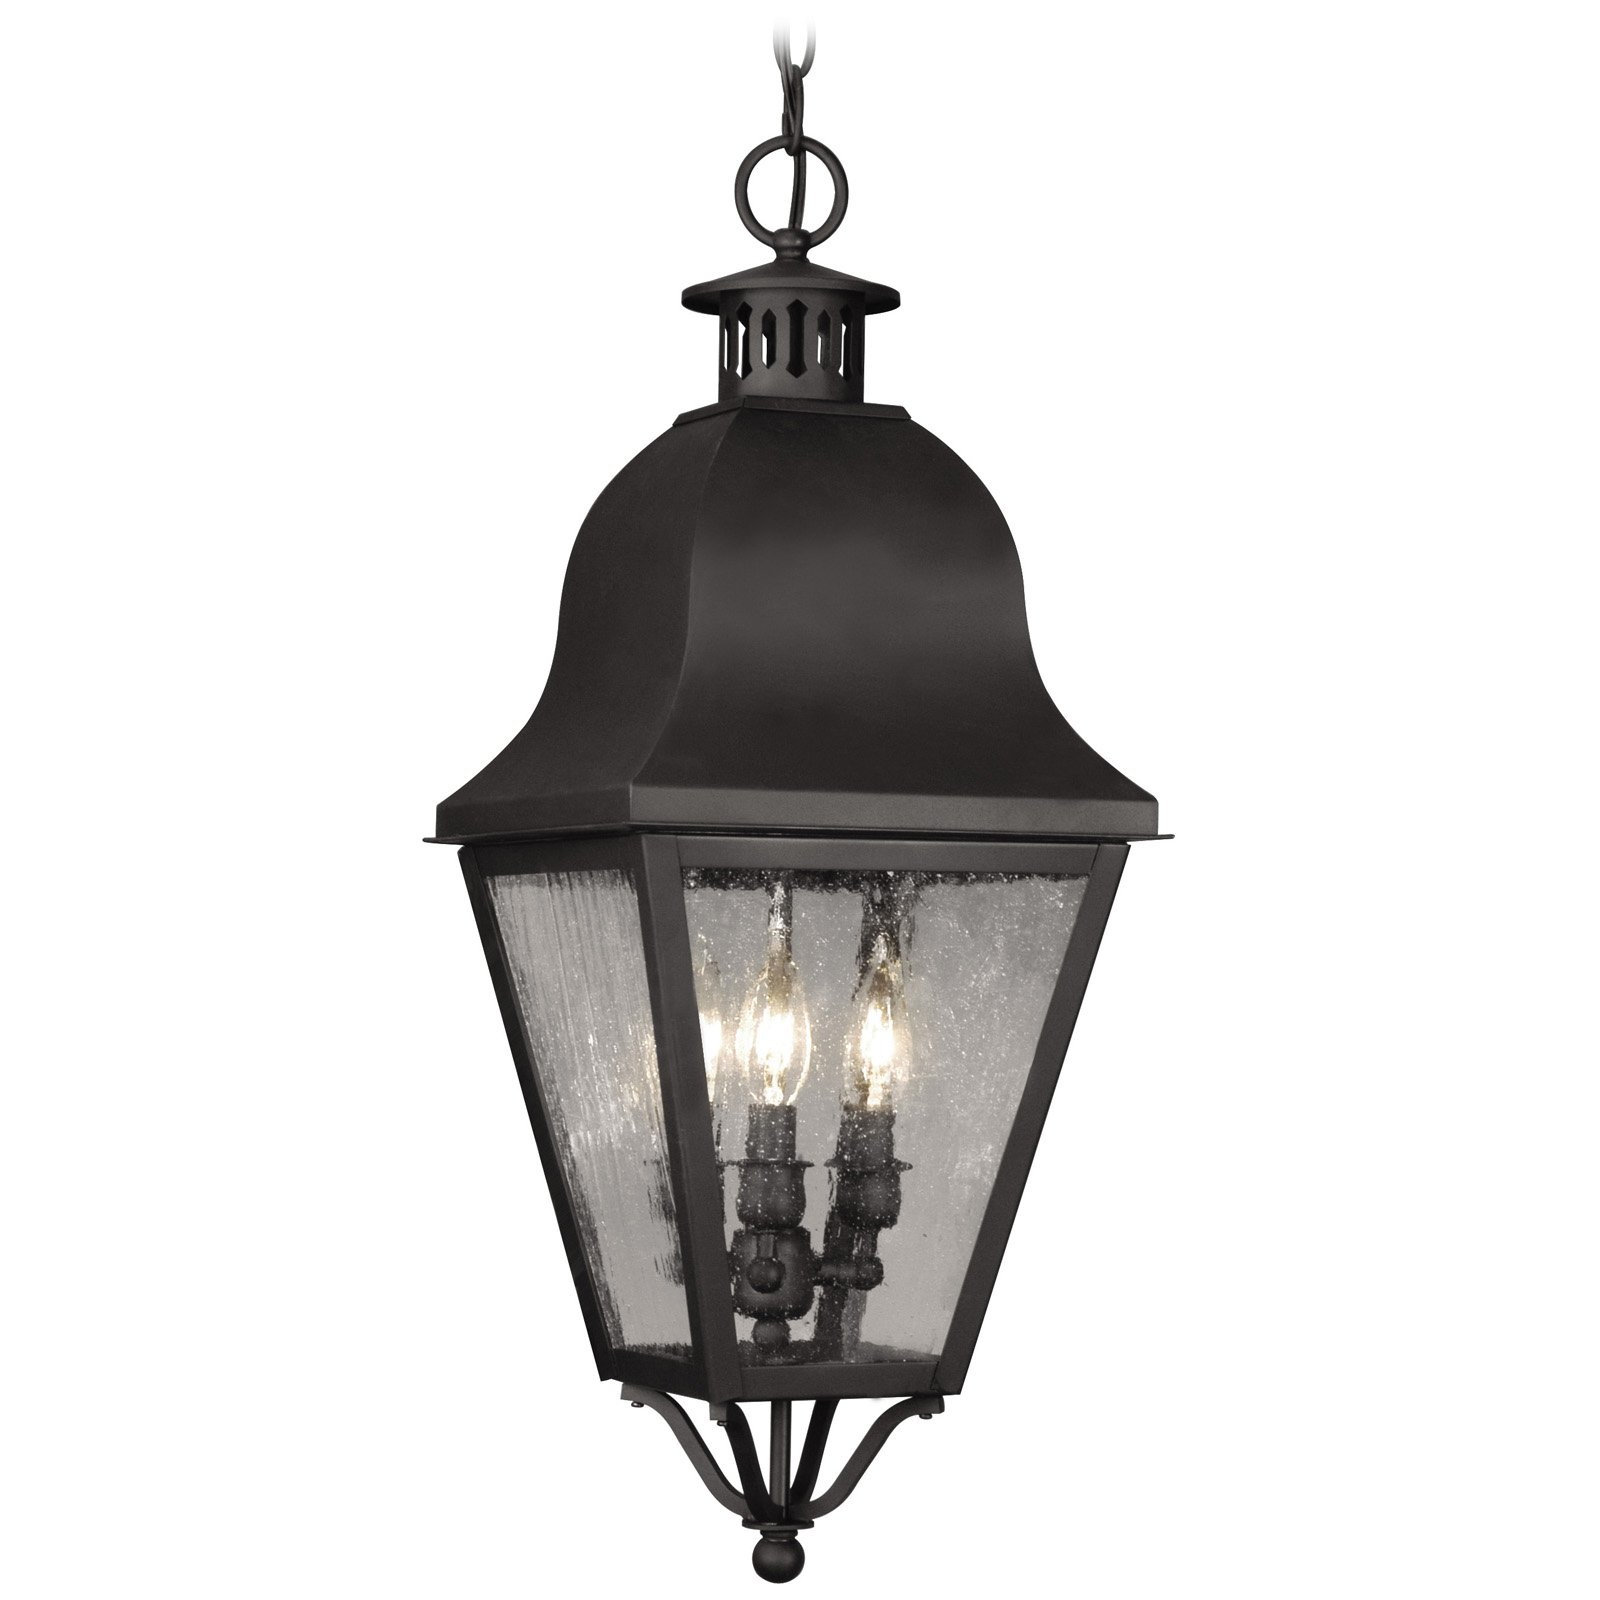 Livex Amwell 2557-04 Outdoor Hanging Lantern 27.5H in. Black by Livex Lighting